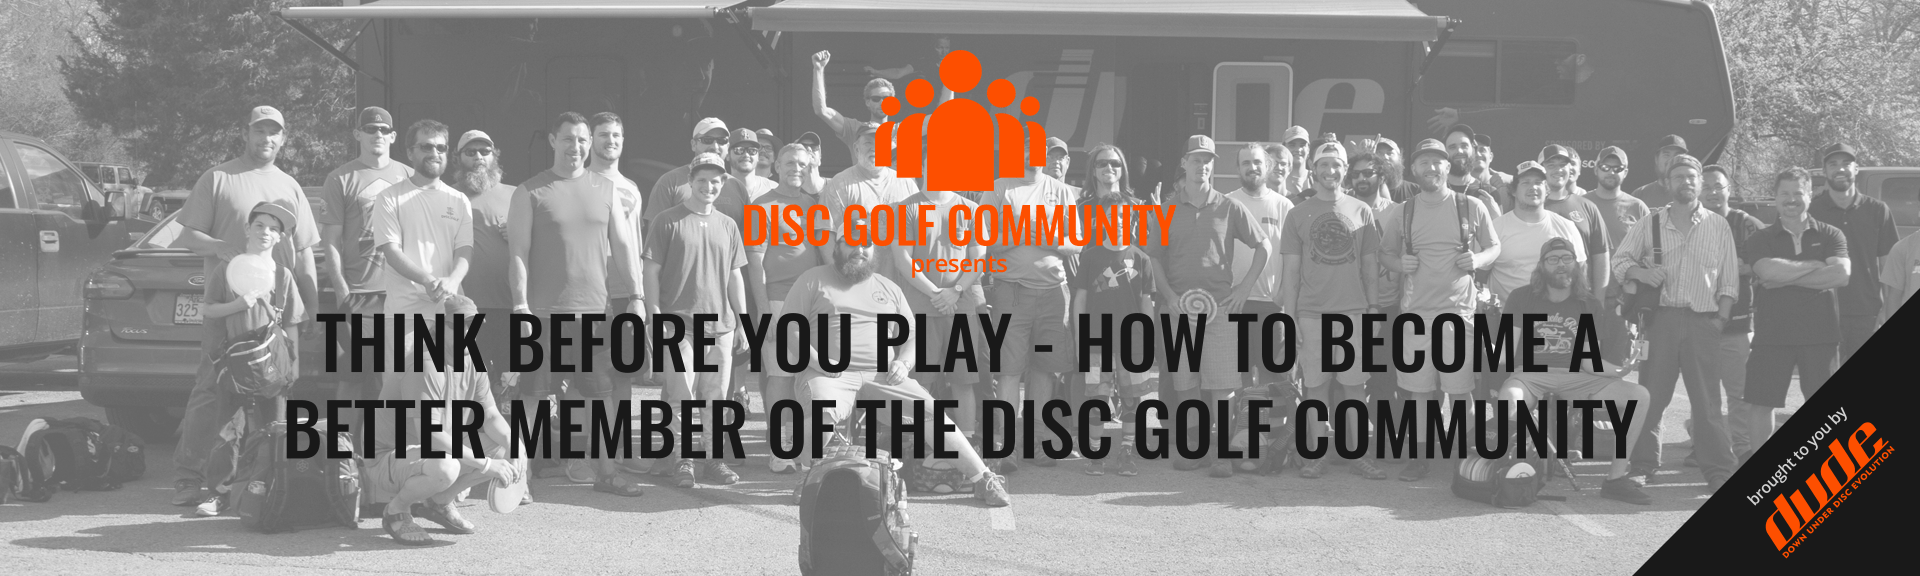 Dude Clothing Disc Golf Community Think Before you Play